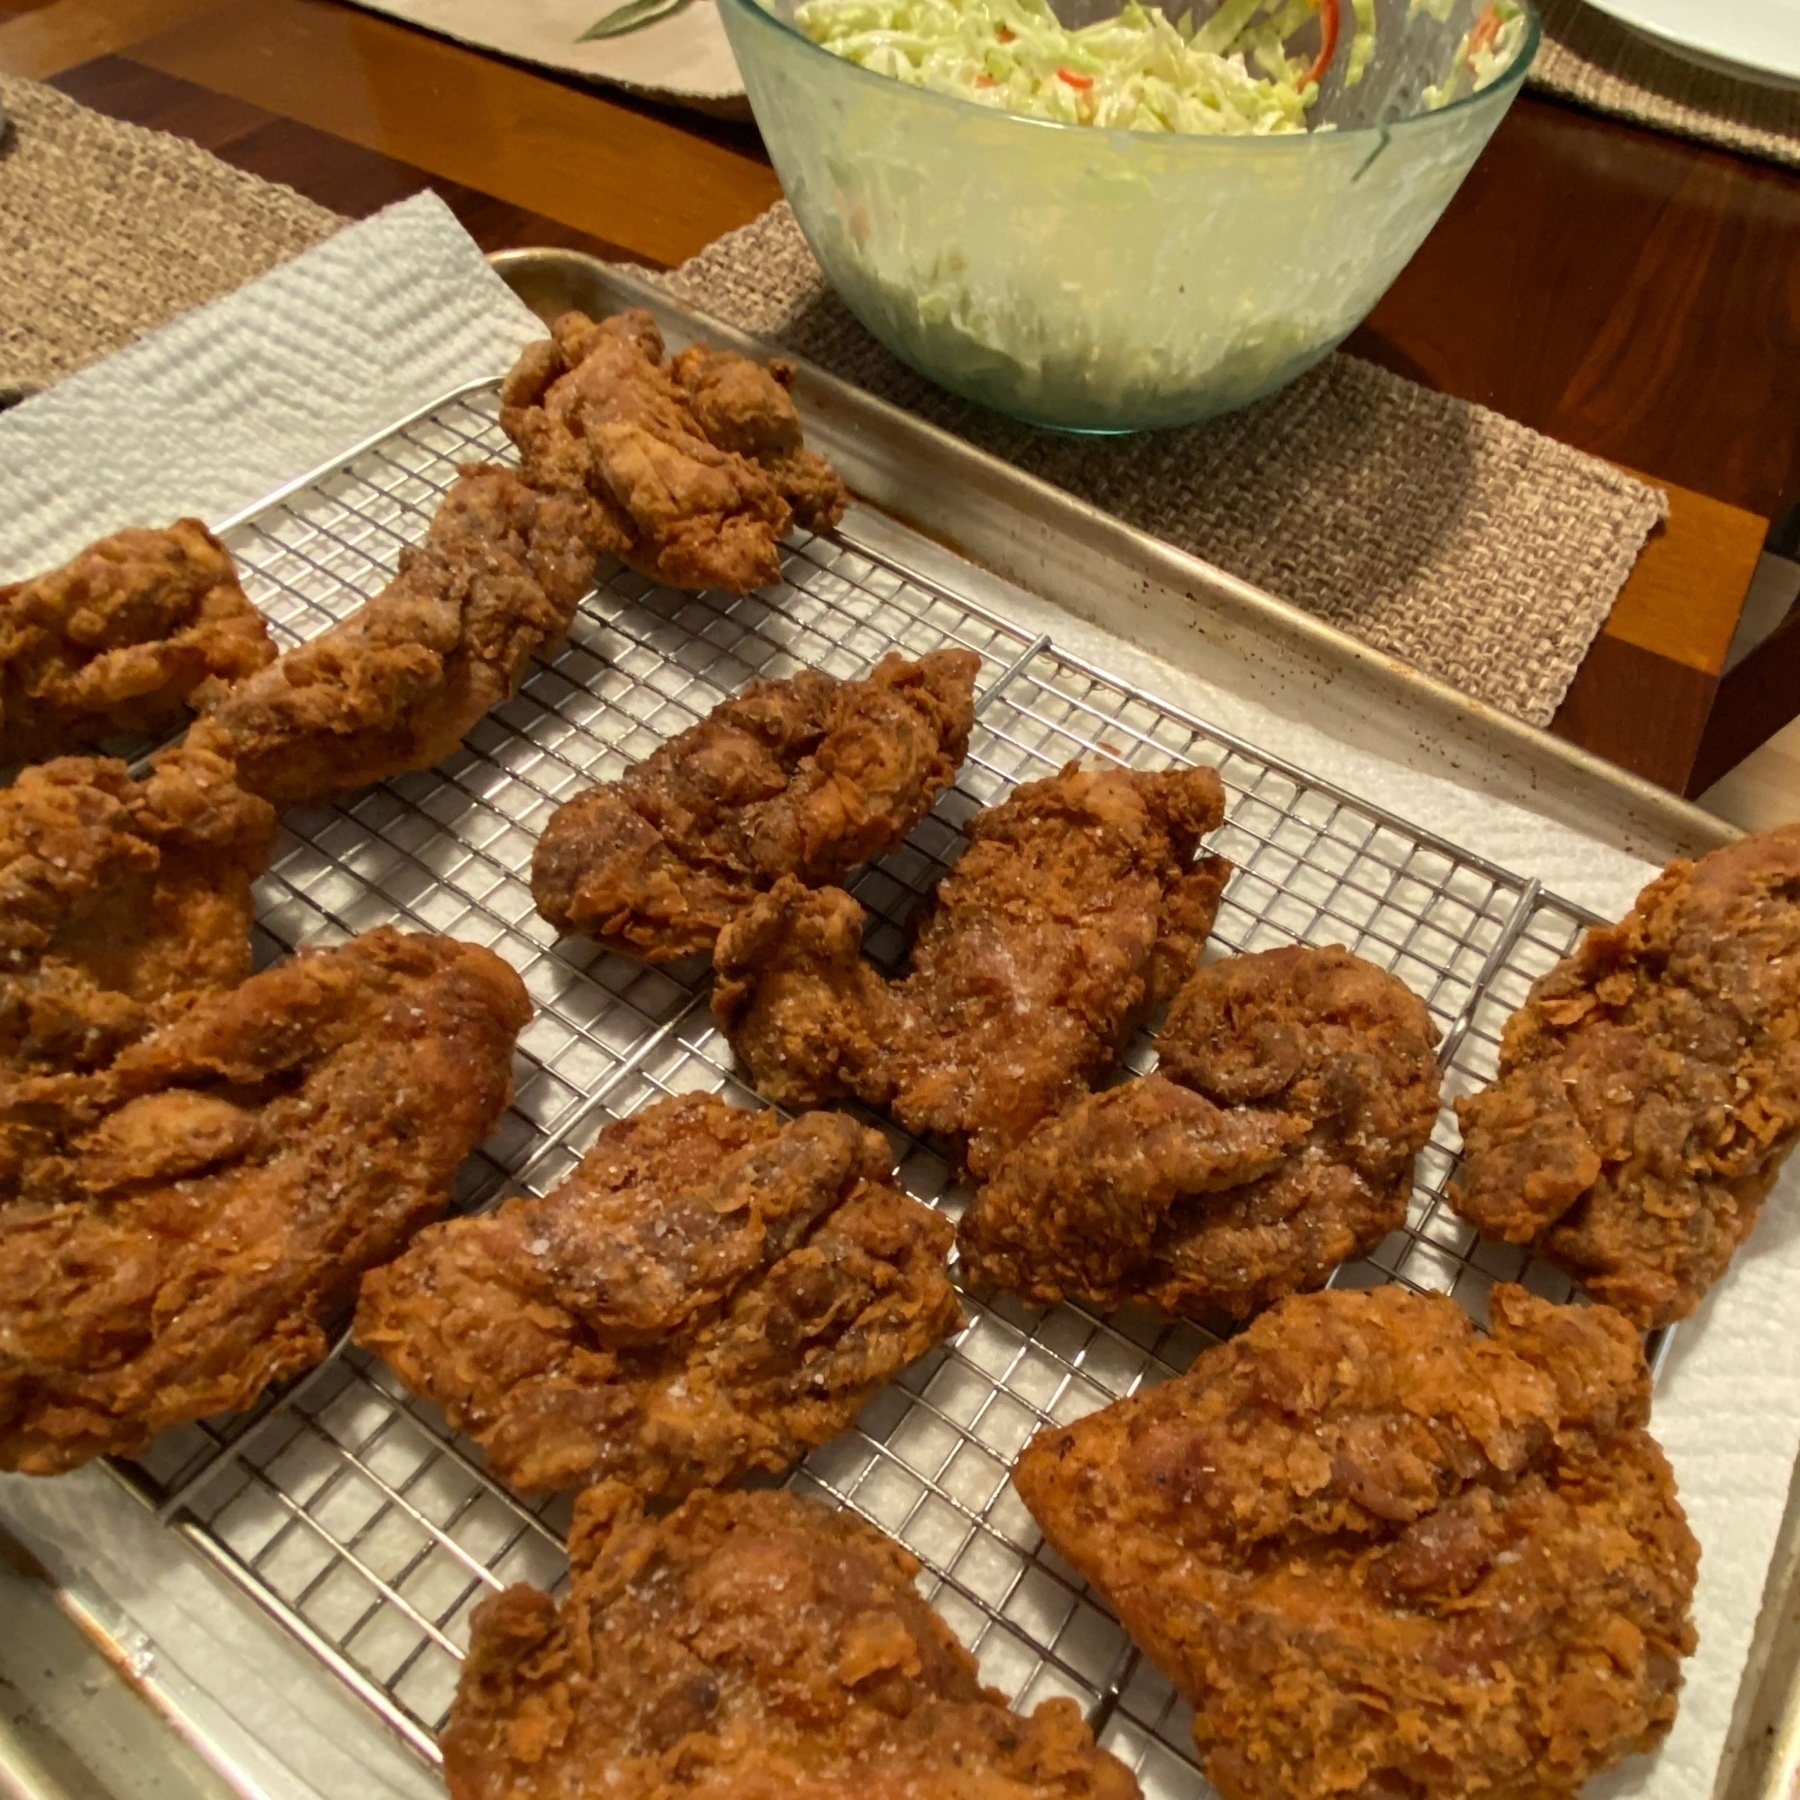 fried chicken on a baking sheet with slaw to the side (slaw has ripe red Santa Fe pepper slices).